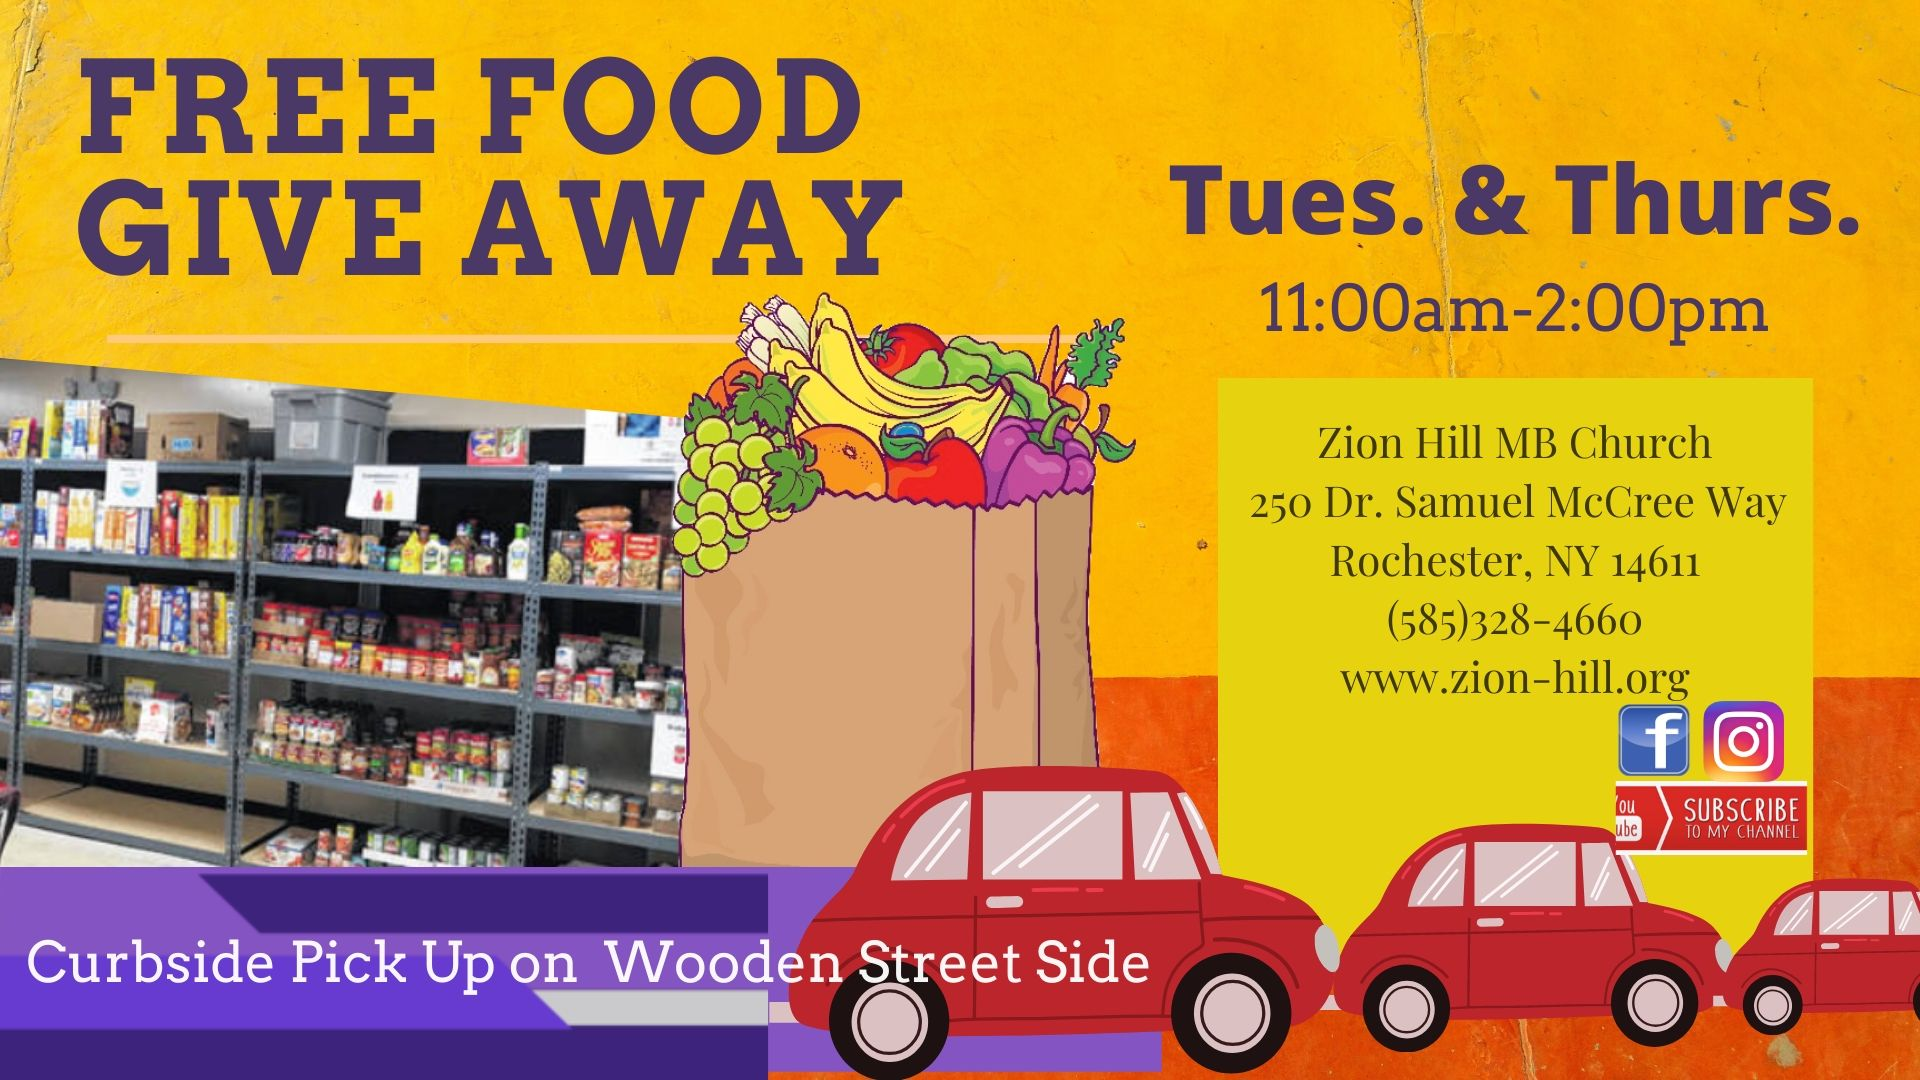 Free Food Giveaway| April 10th 11am-1:00pm| at Zion Hill